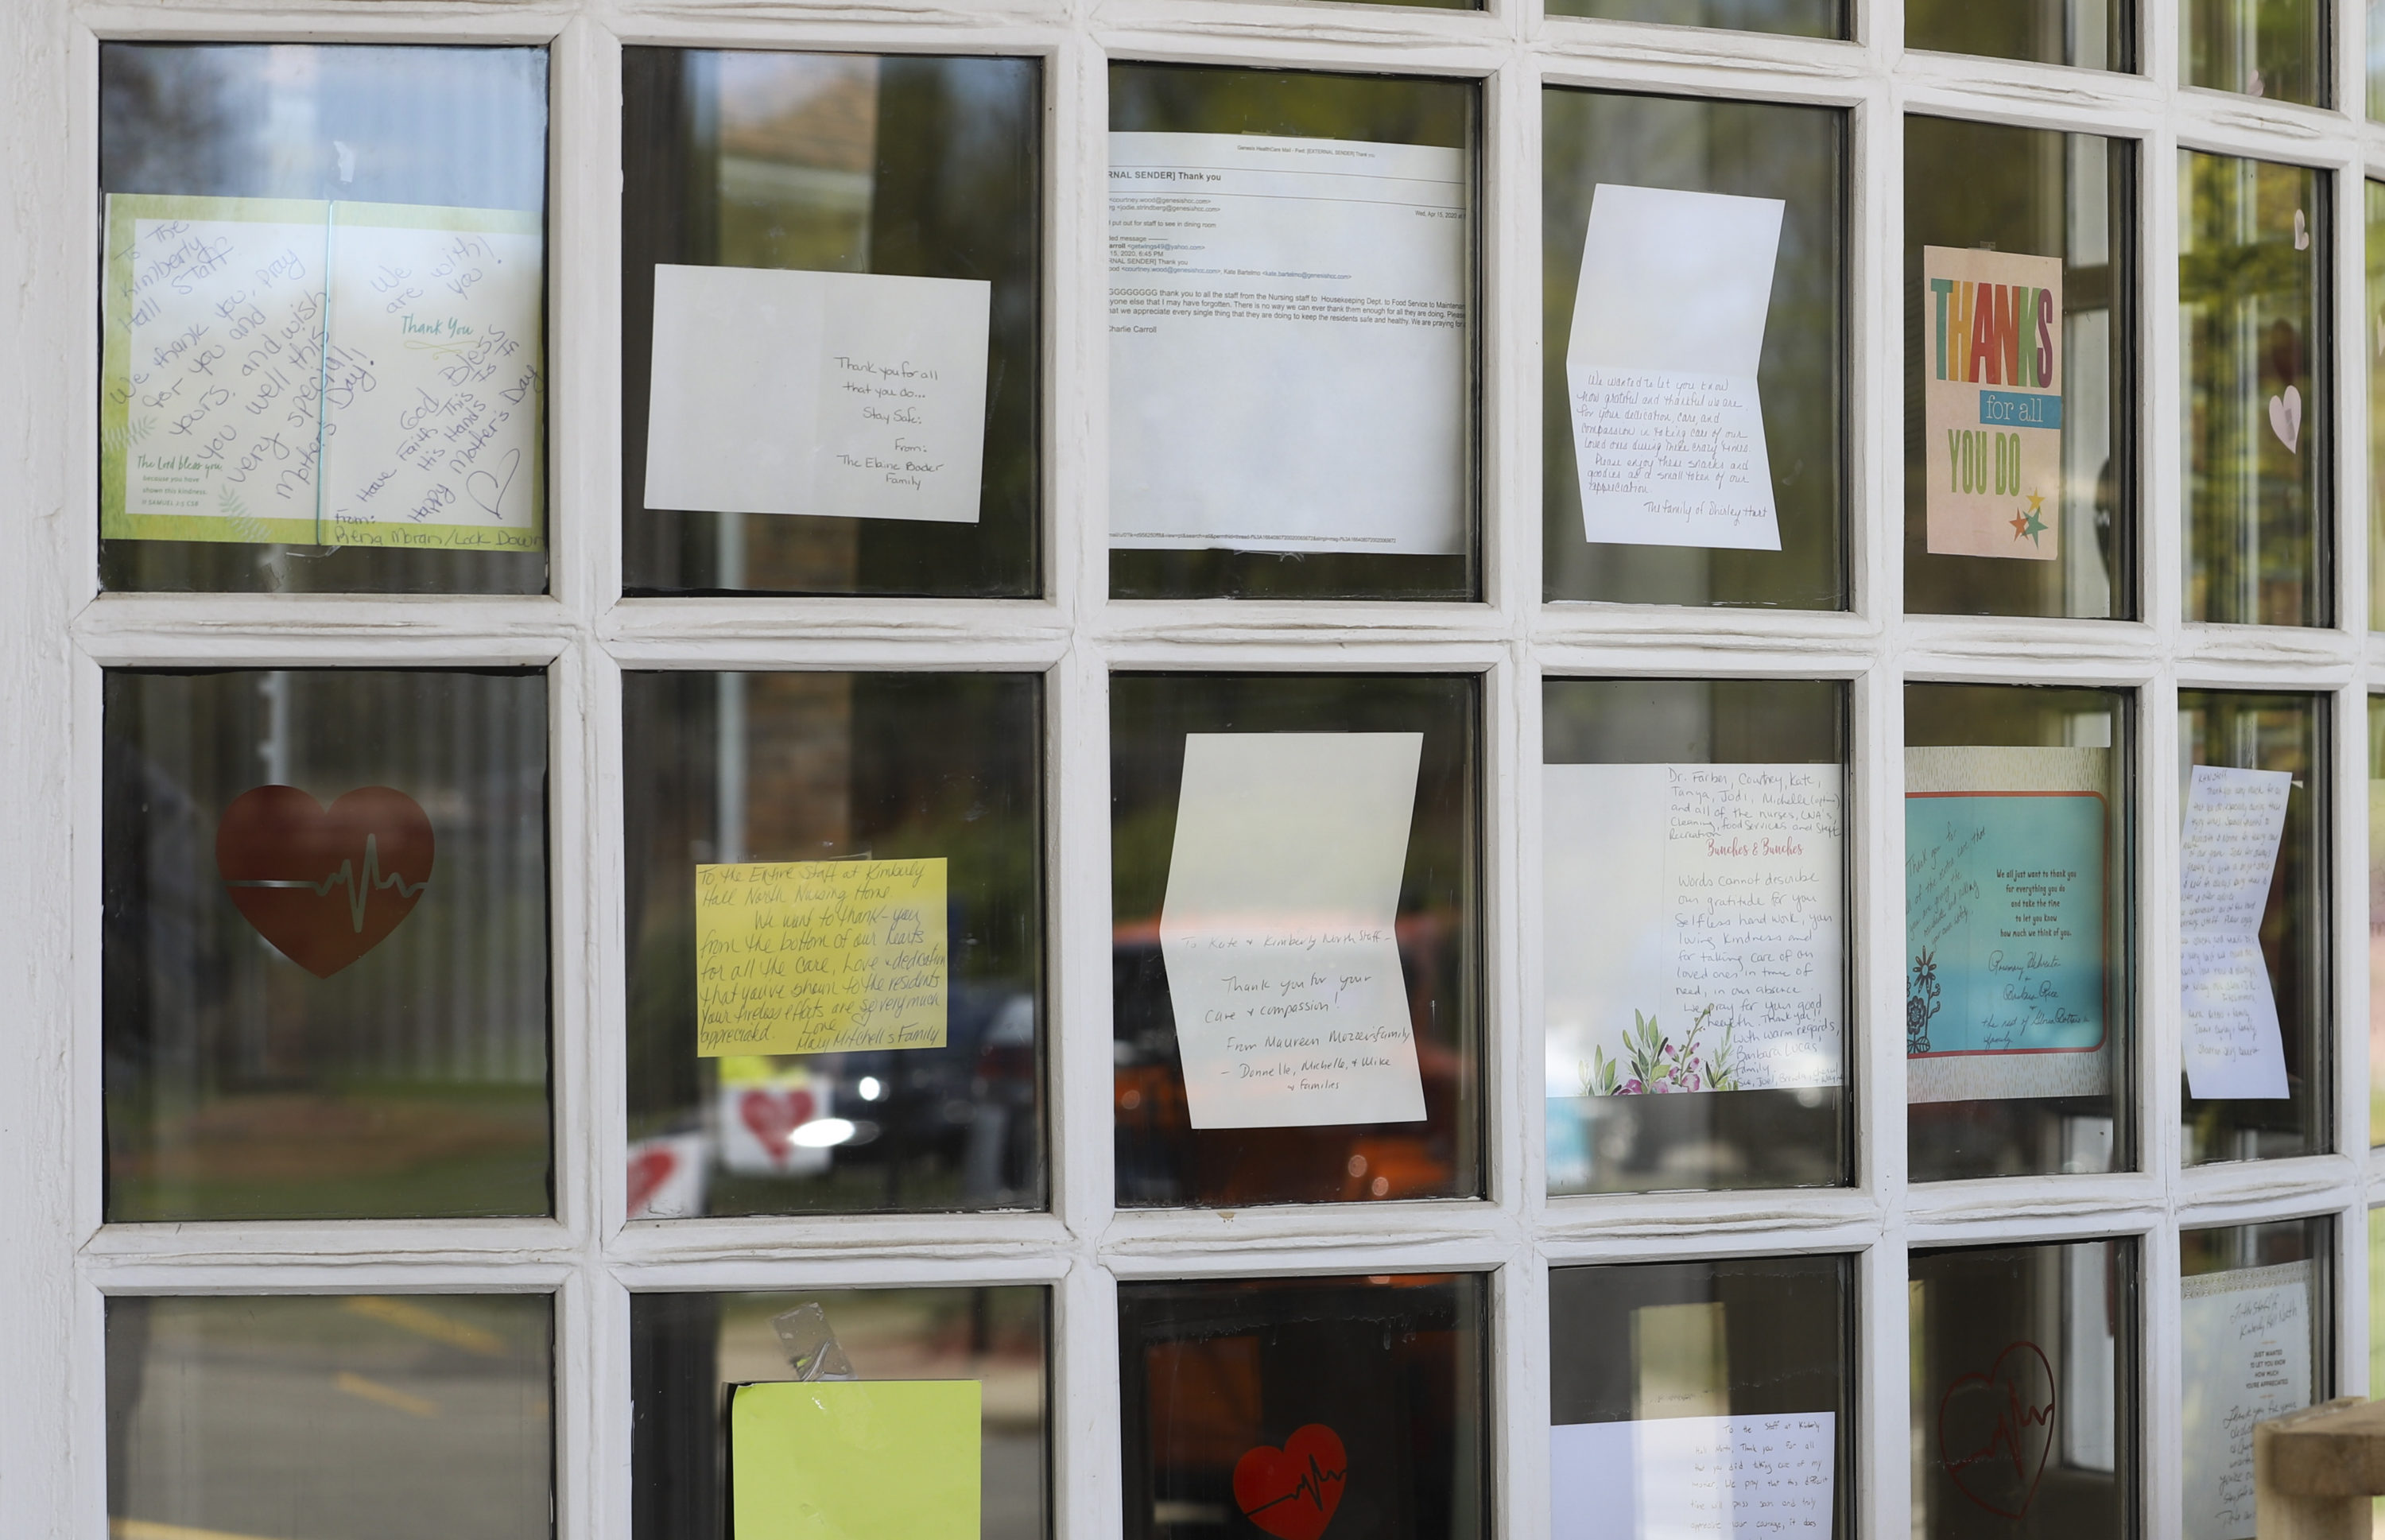 In this May 14, 2020 file photo, notes for healthcare workers hang in the front window at a Connecticut nursing home. (Chris Ehrmann/AP)